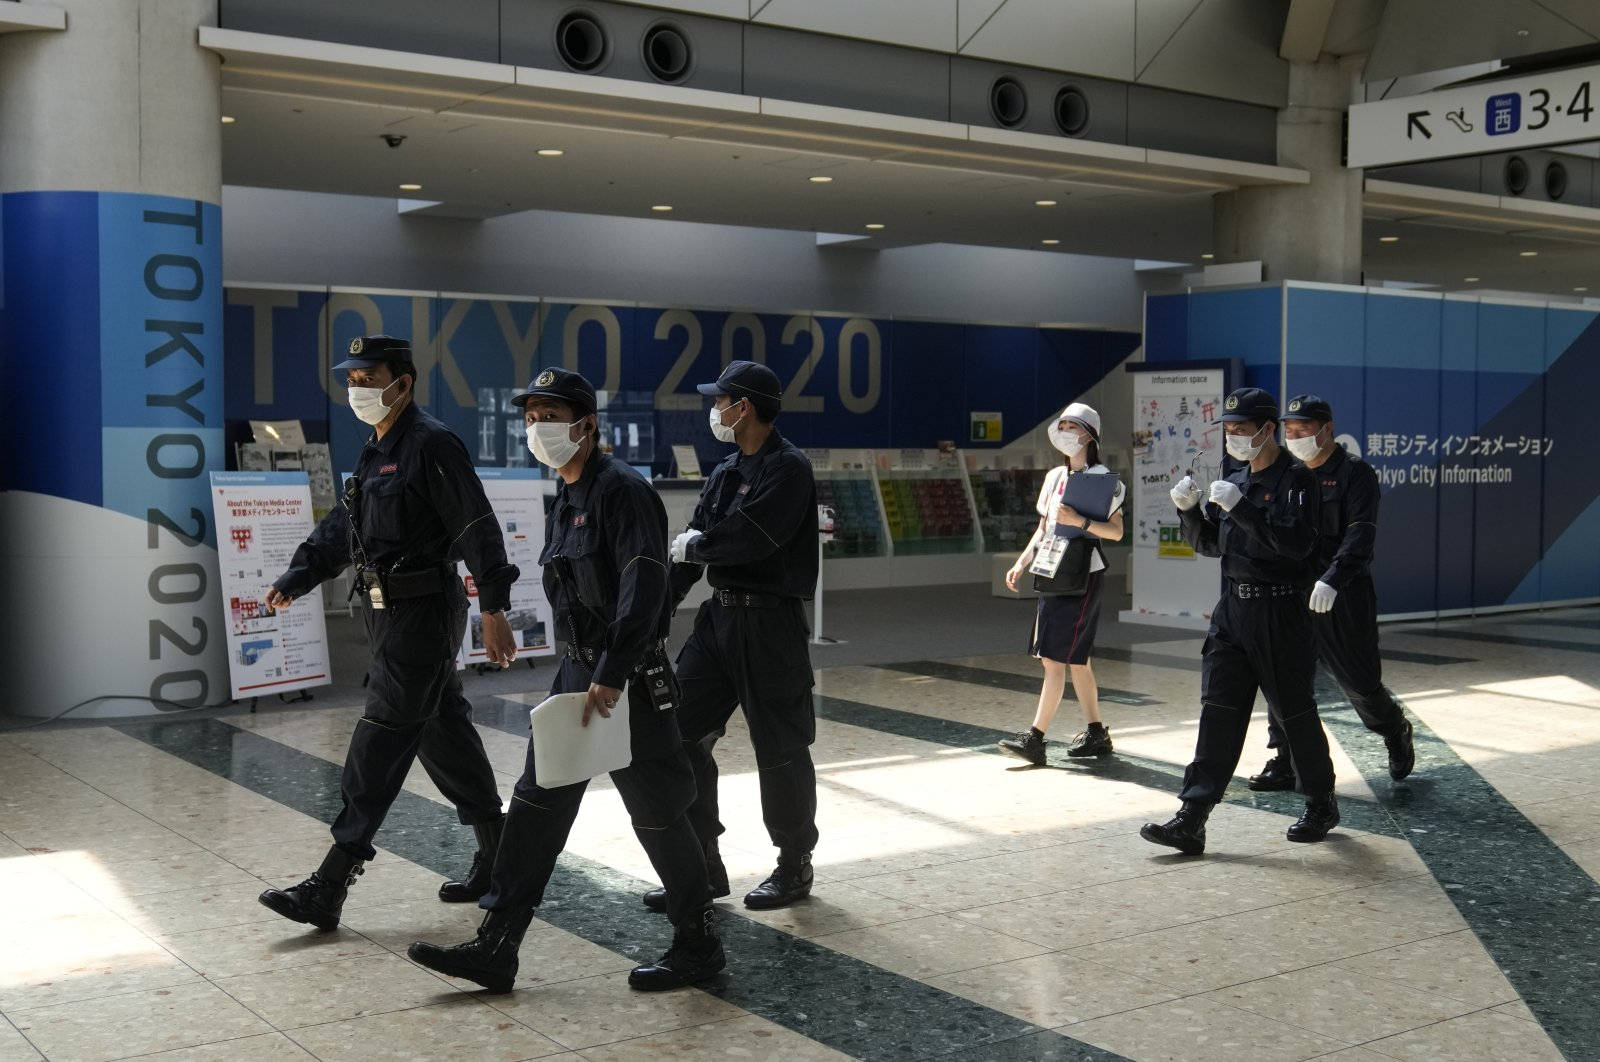 Police walk past the Tokyo 2020 banners as they prepare for a security check at the main press center of the 2020 Summer Olympics, in Tokyo, Japan, July 12, 2021. (AP Photo)